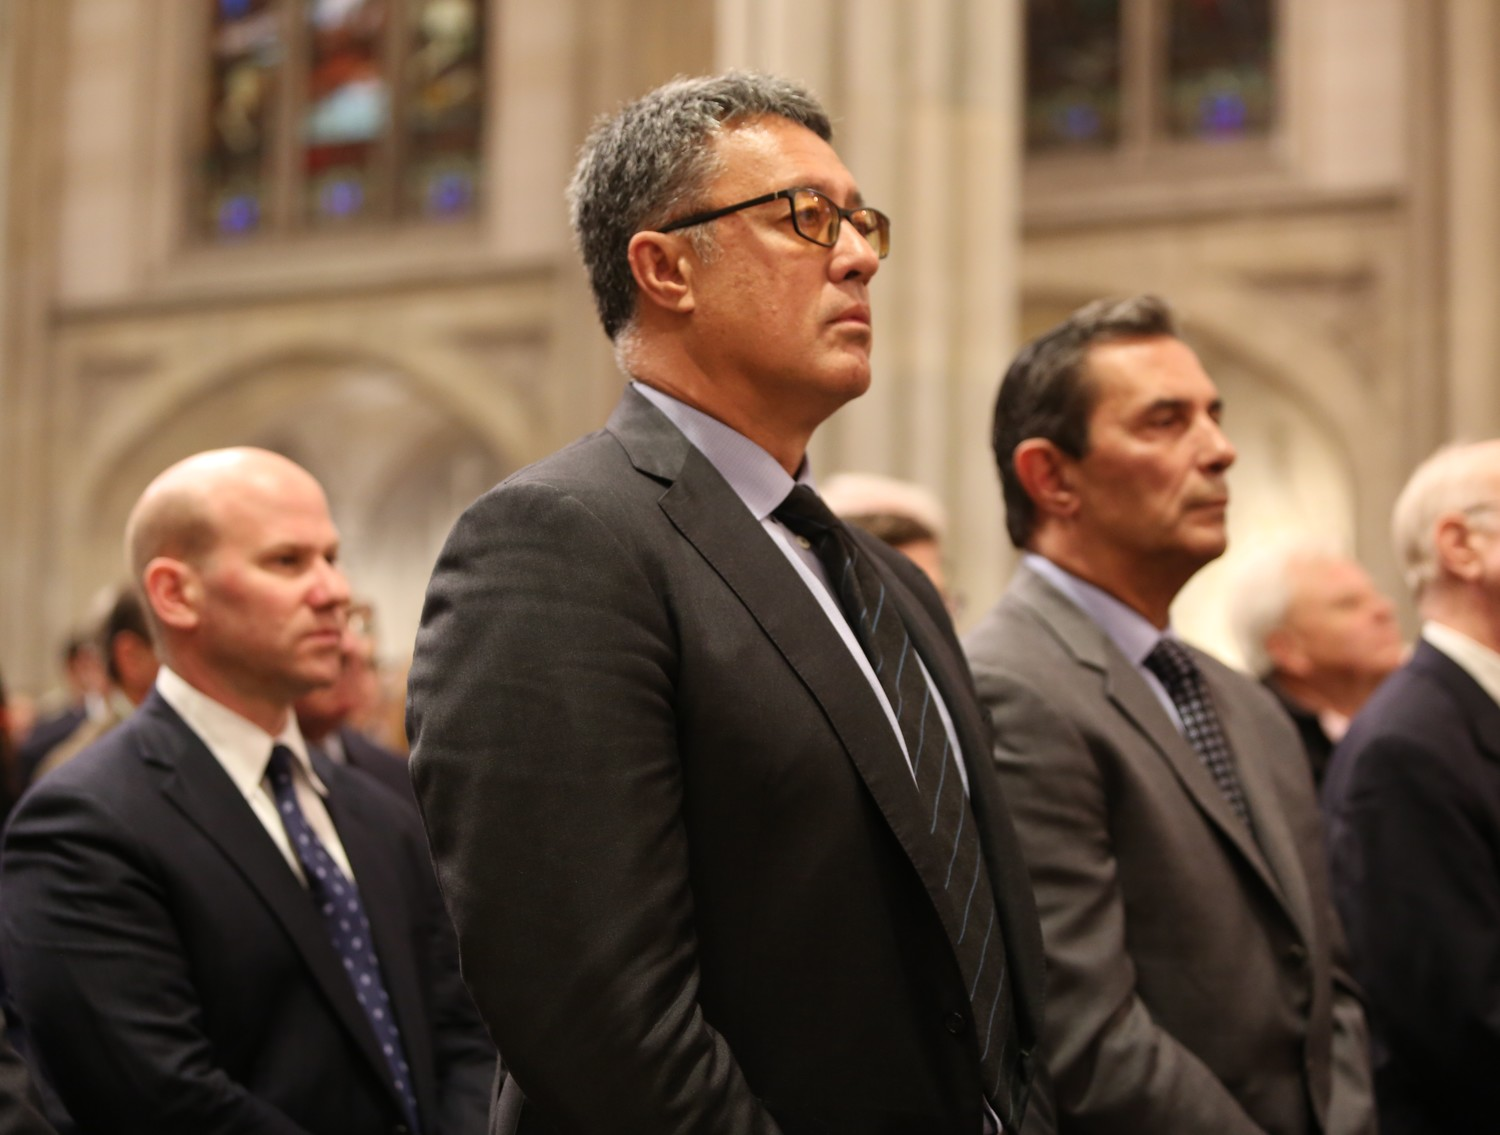 Former New York Mets Ron Darling and Lee Mazzilli were among Rusty Staub's former teammates who attended the Memorial Mass at St. Patrick's Cathedral April 25.